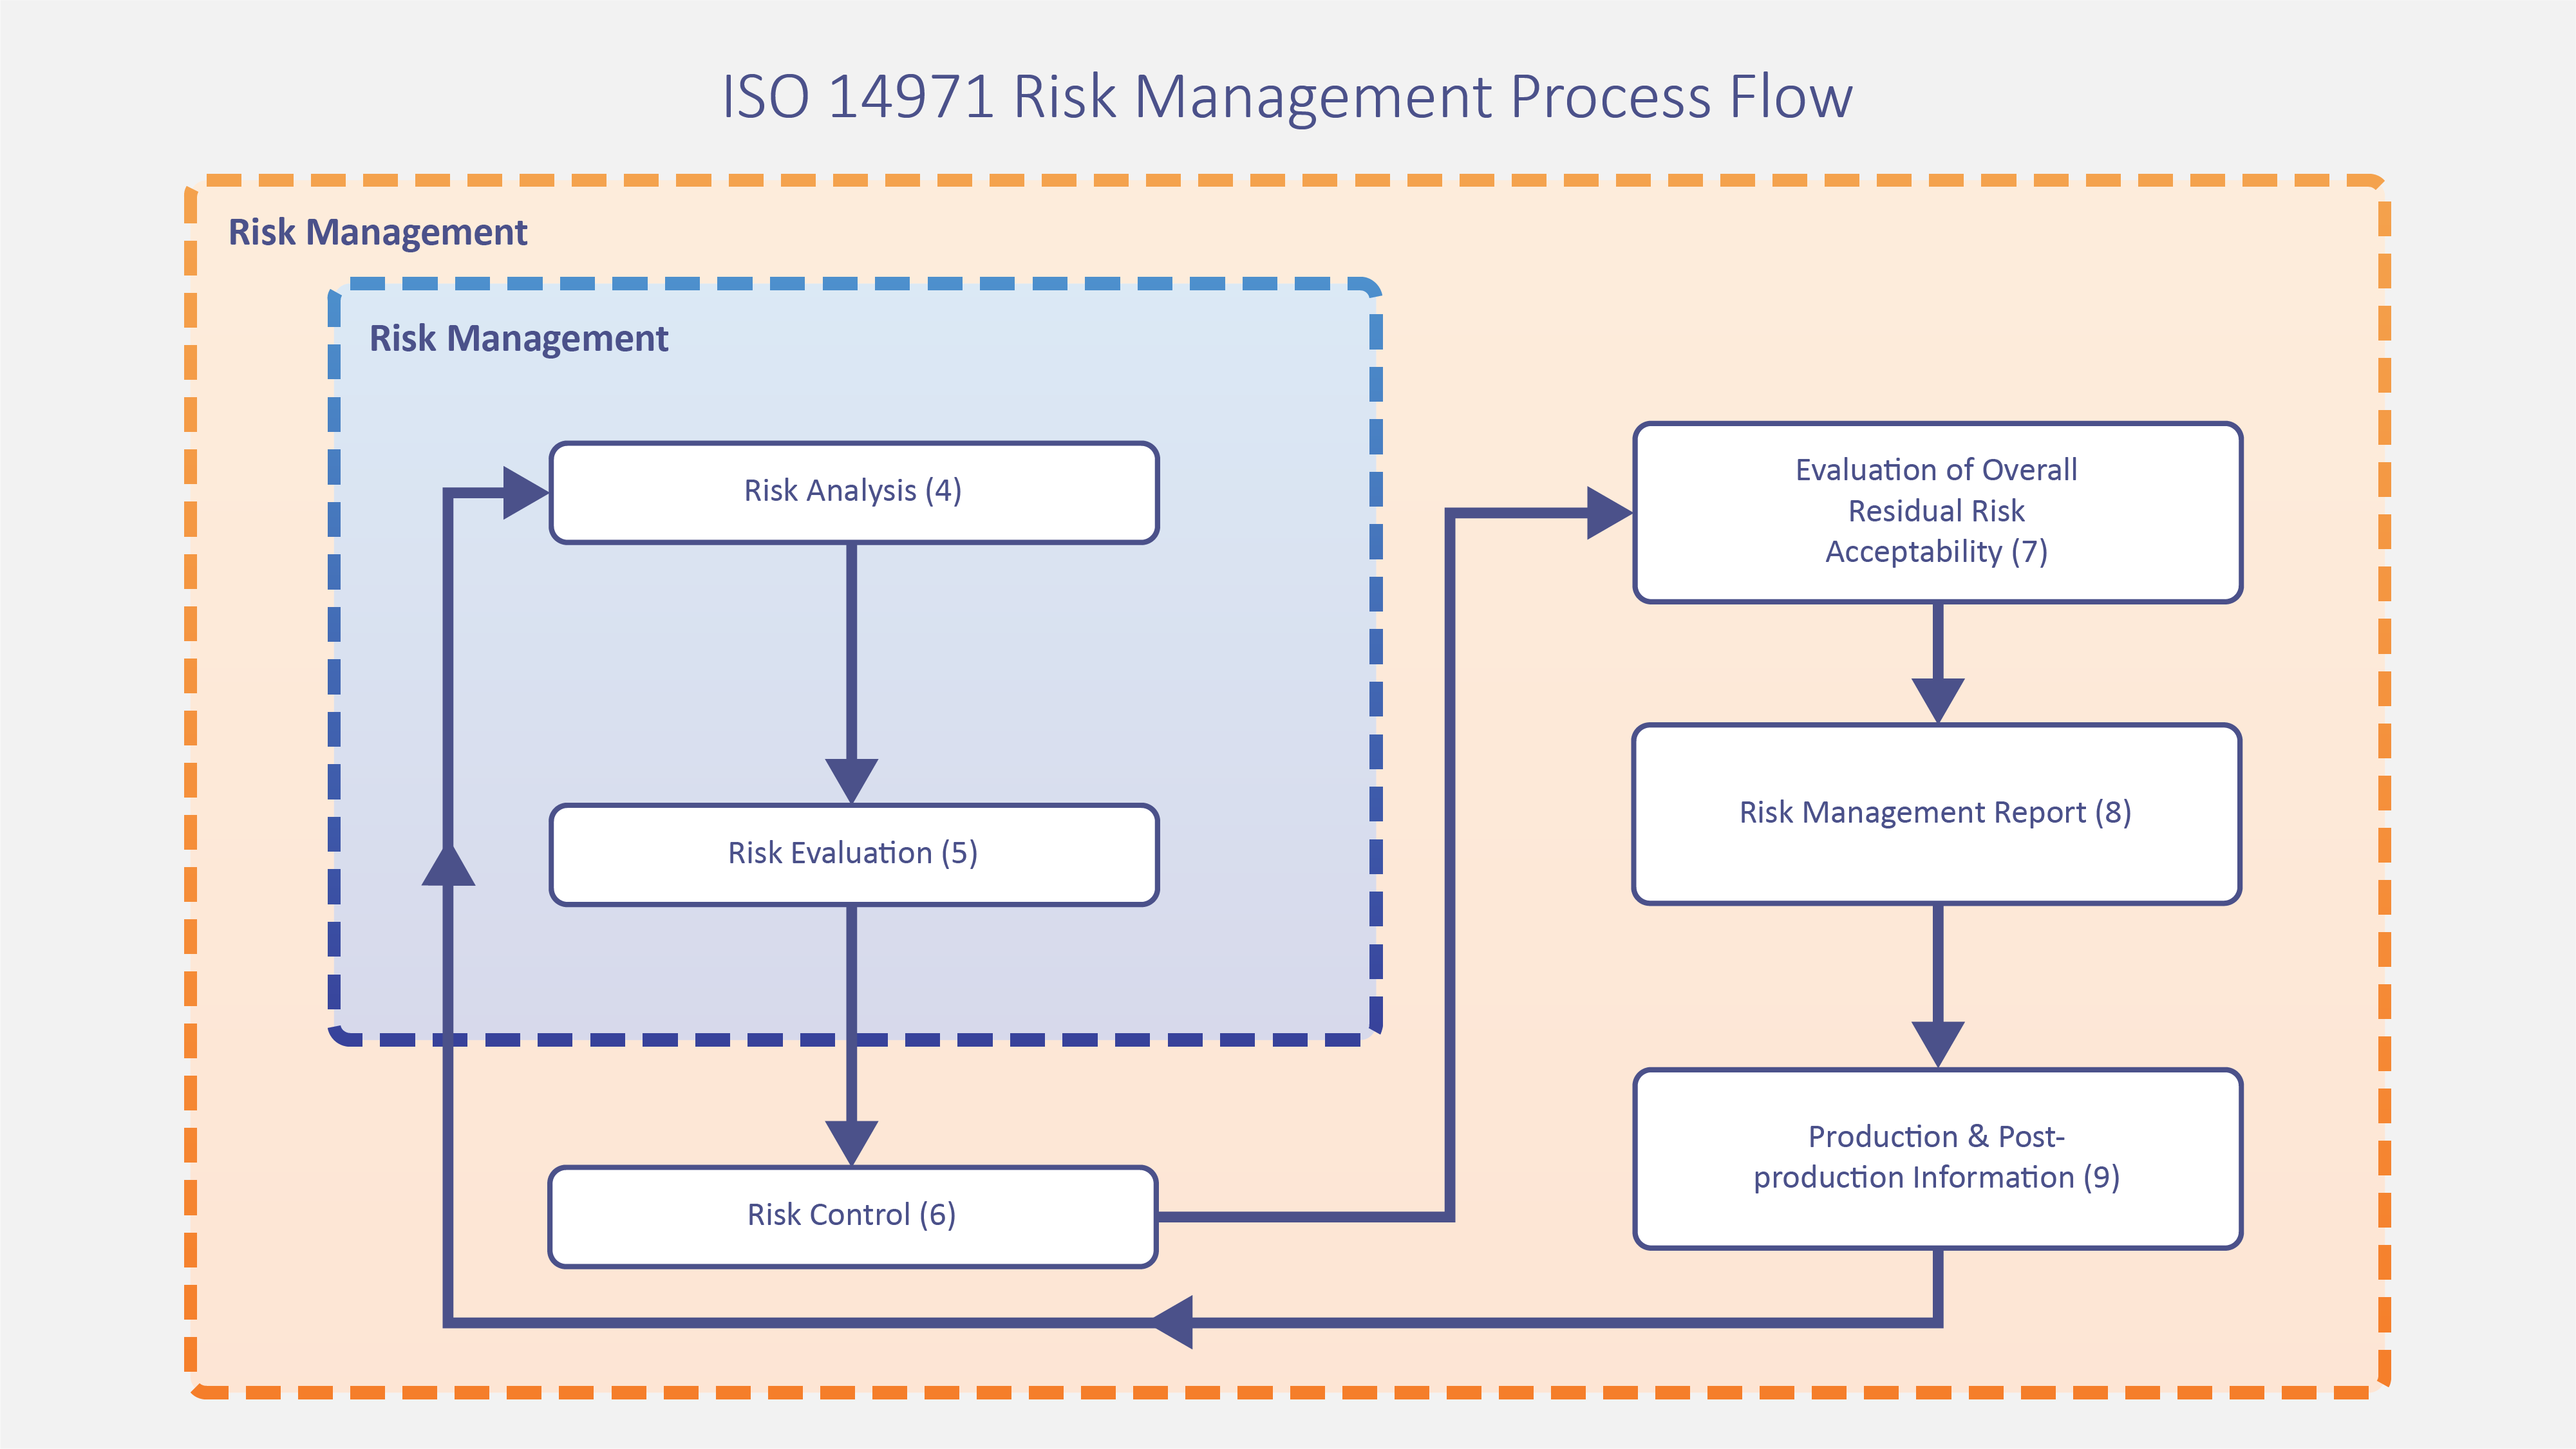 ISO 14971 Risk Management Process Flow